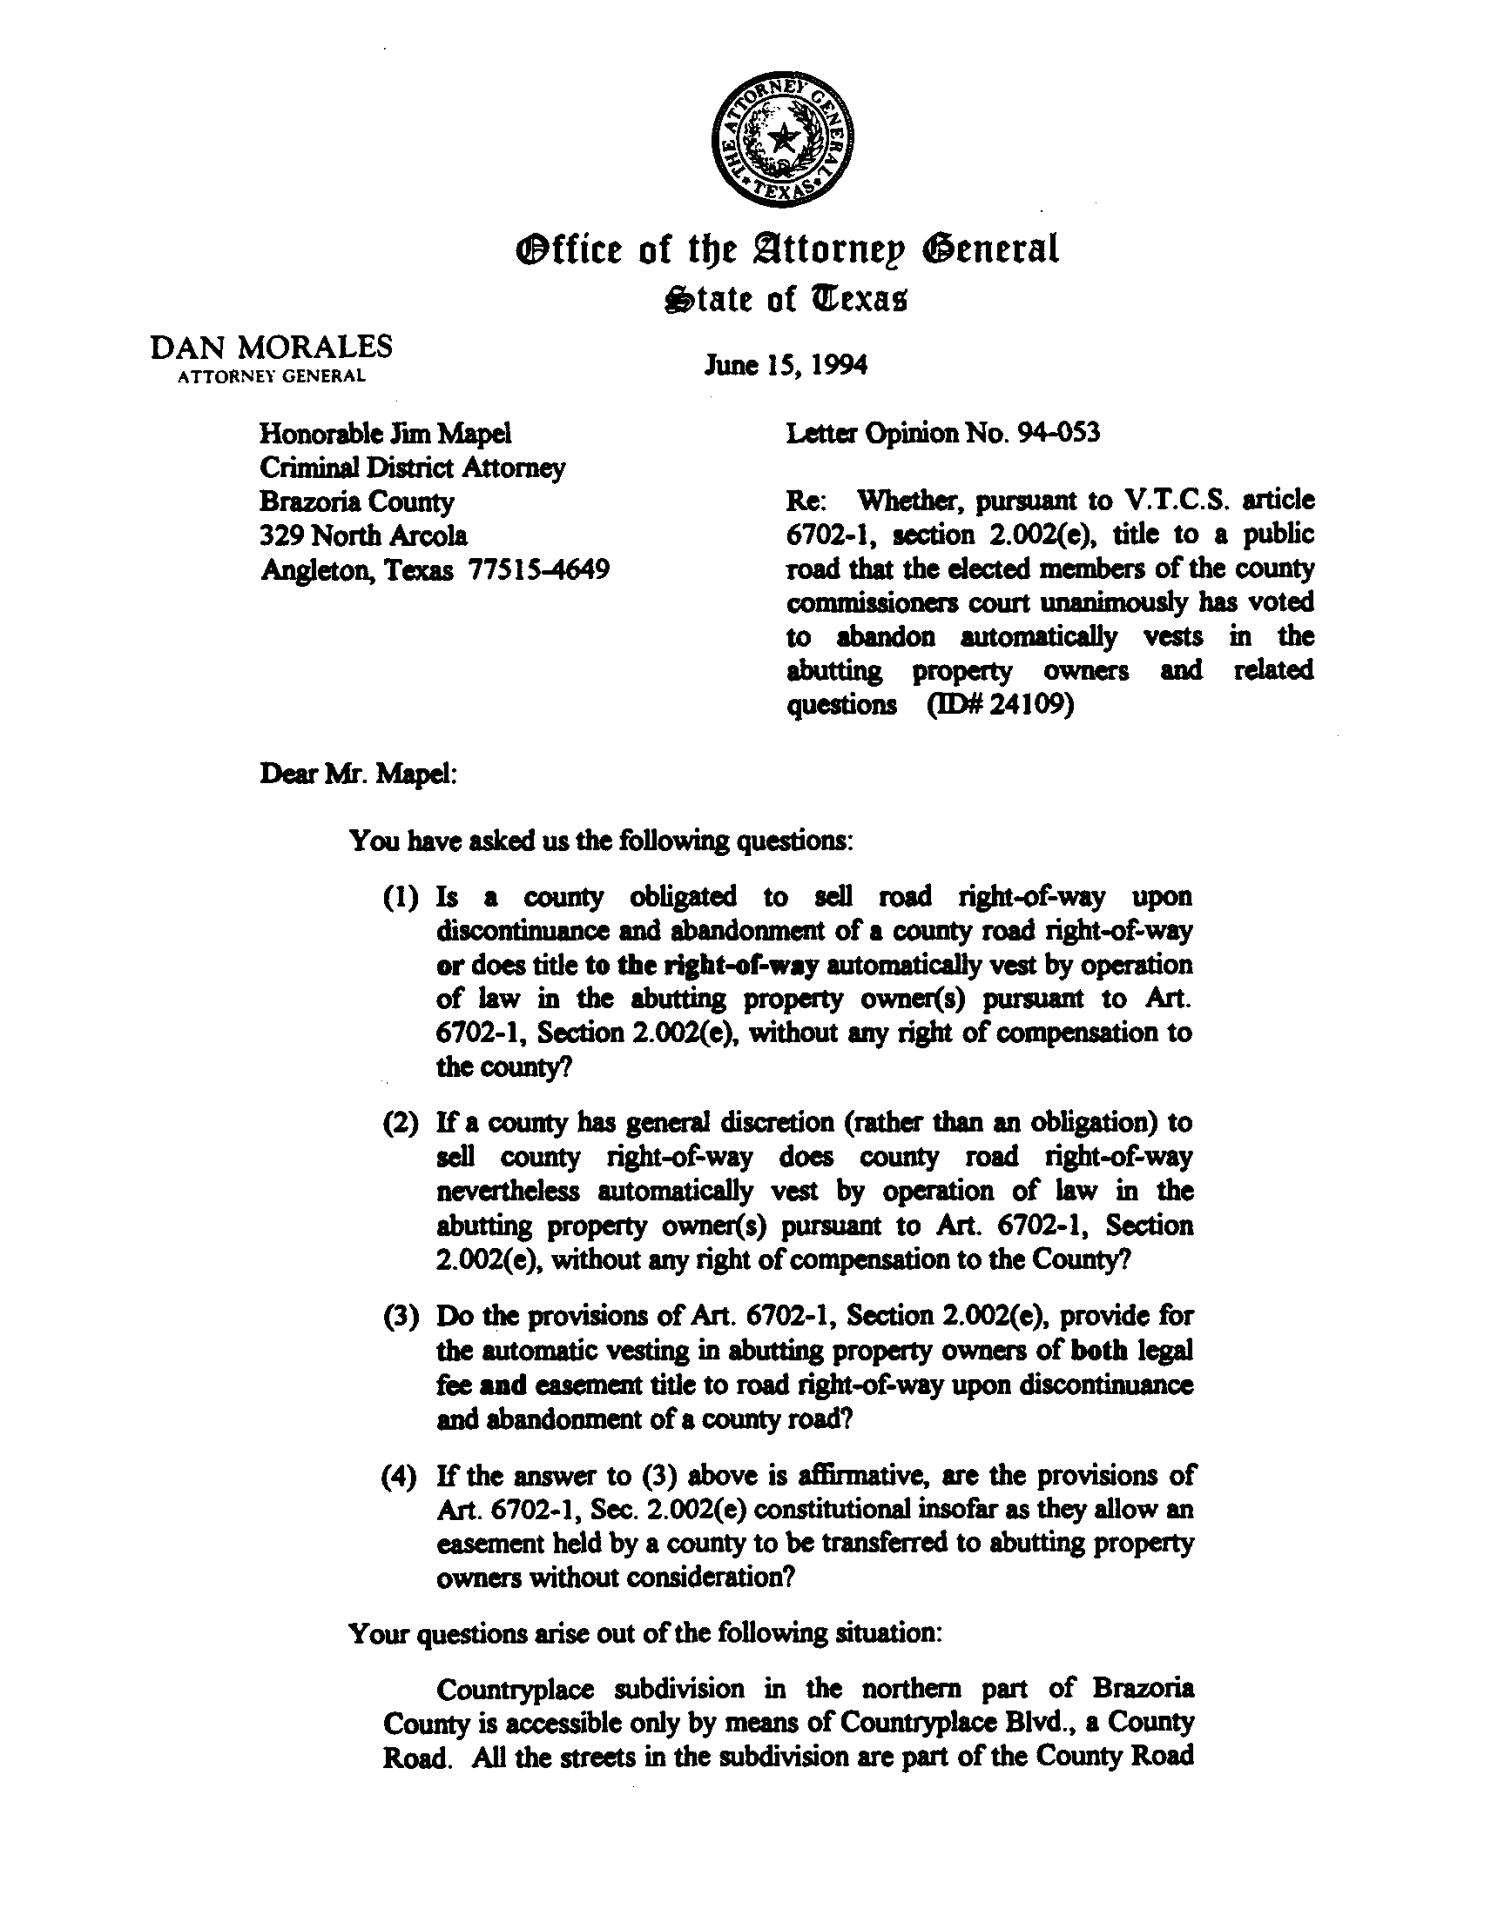 Texas attorney general opinion lo94 053 page 1 of 6 the portal texas attorney general opinion lo94 053 page 1 of 6 the portal to texas history altavistaventures Choice Image